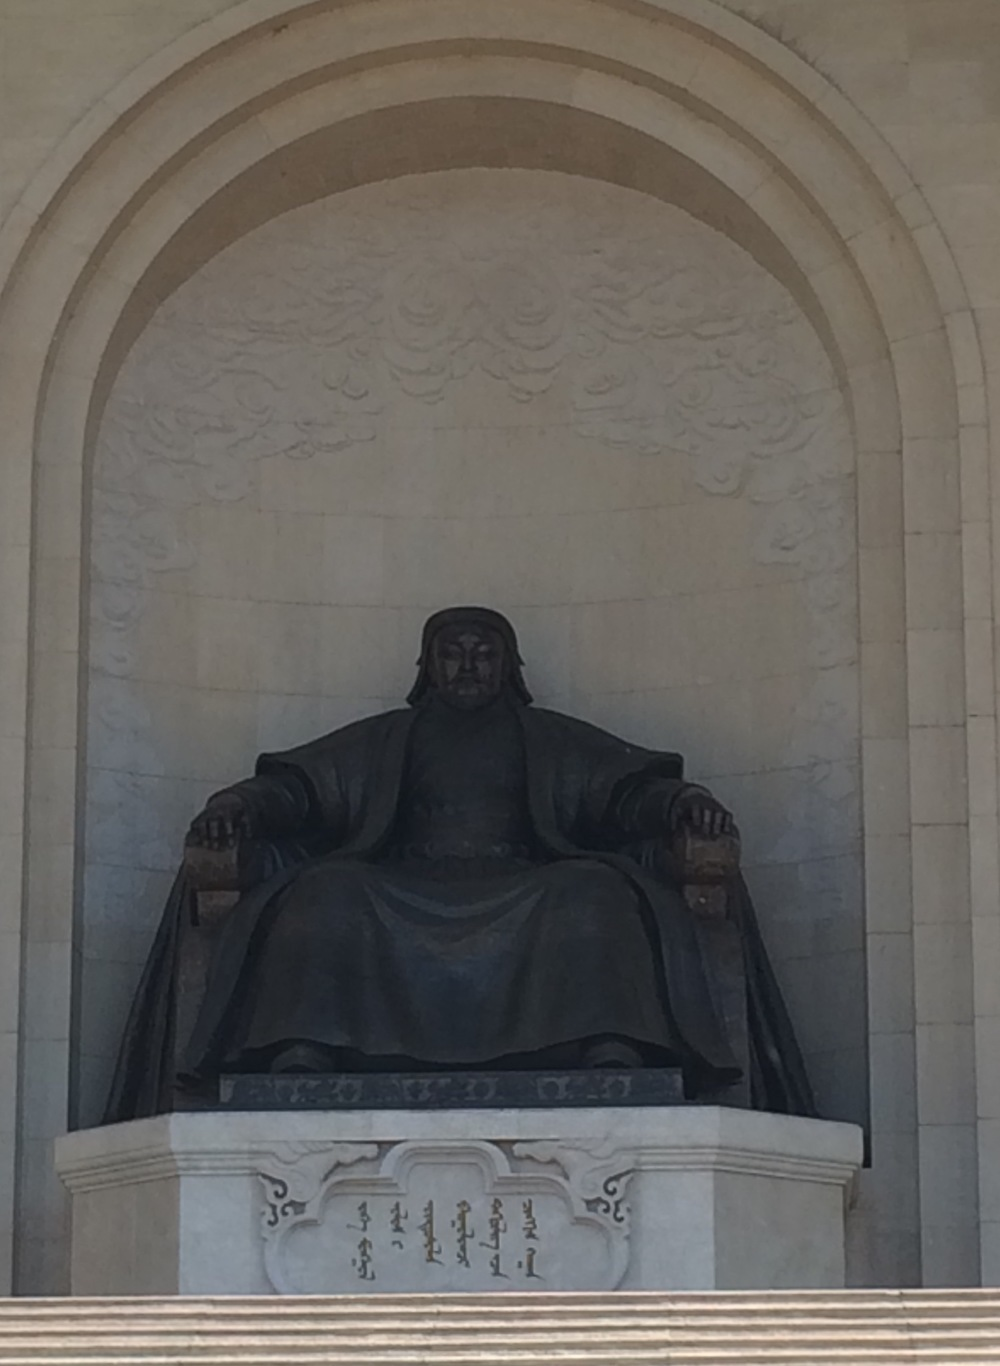 Statue of Genghis Khan in front of Mongolia's Parliament Building